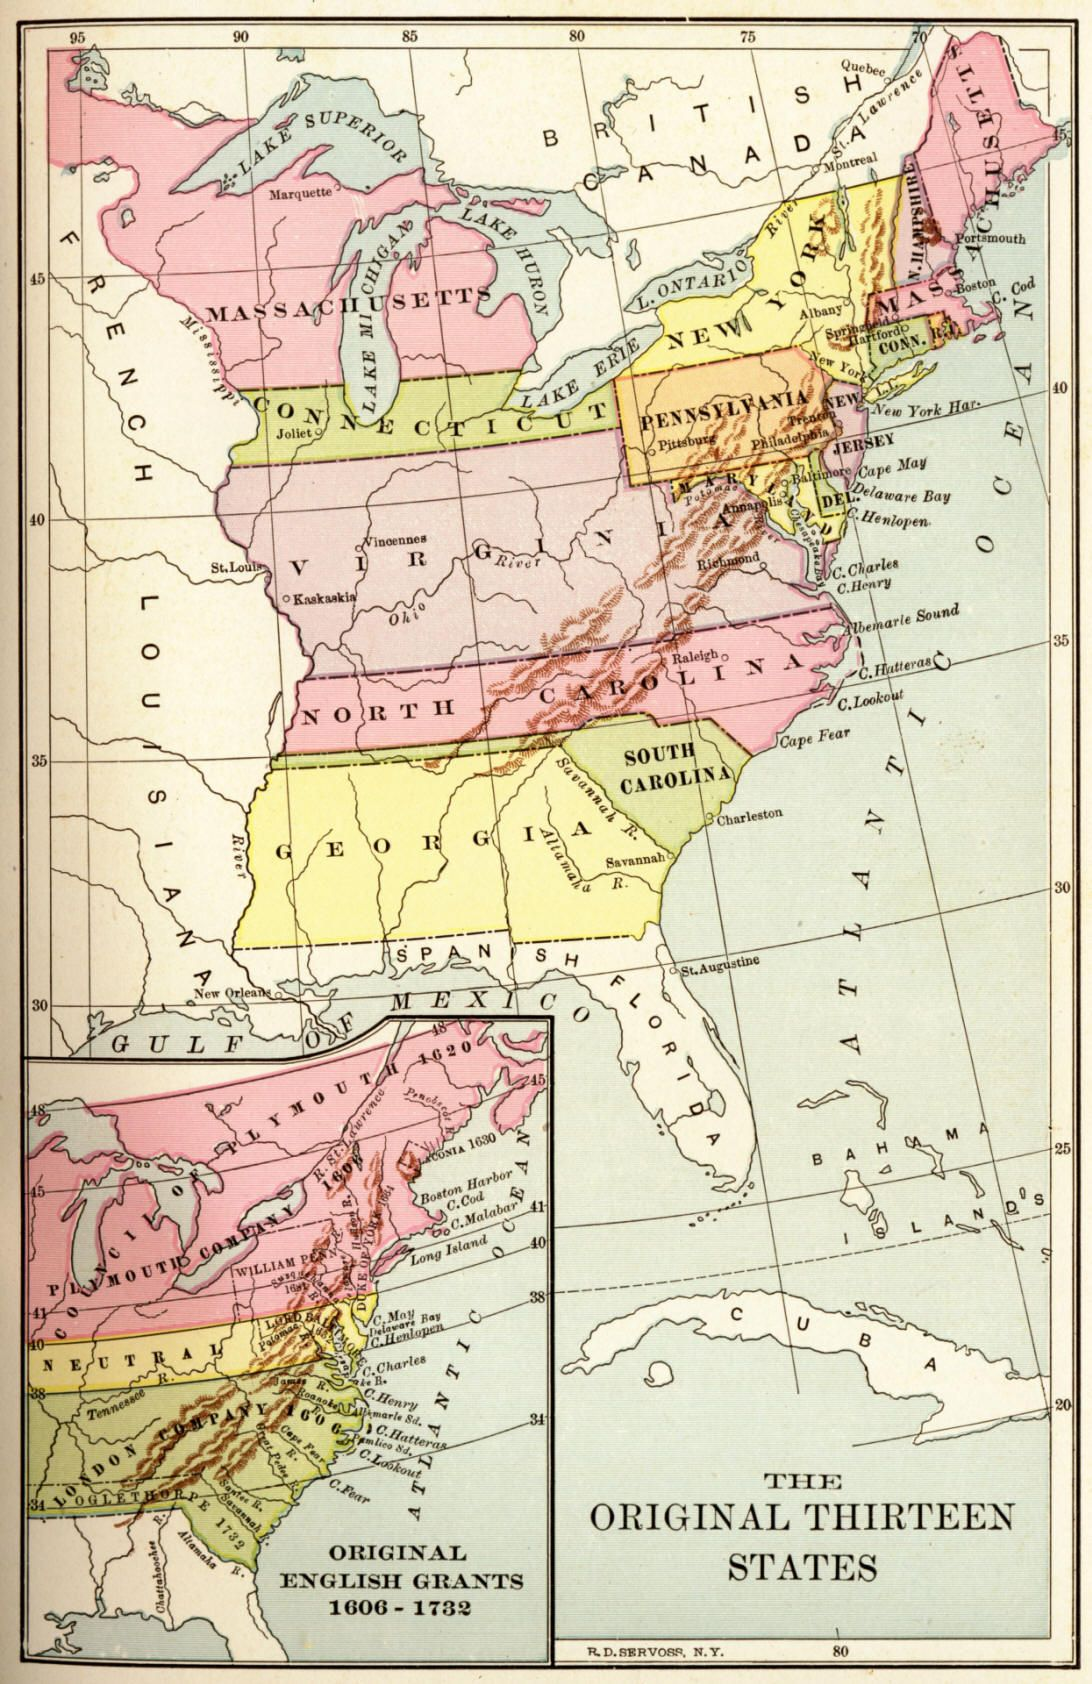 Tumblr. Original 13 colonies with western reserves | Maps, old and on north carolina 13 colonies map, hudson river 13 colonies map, connecticut 13 colonies map, appalachian mountains 13 colonies map, french canada 13 colonies map, white mountains 13 colonies map, new england 13 colonies map, adirondack mountains 13 colonies map, territories 13 colonies map, delaware 13 colonies map, rhode island 13 colonies map,